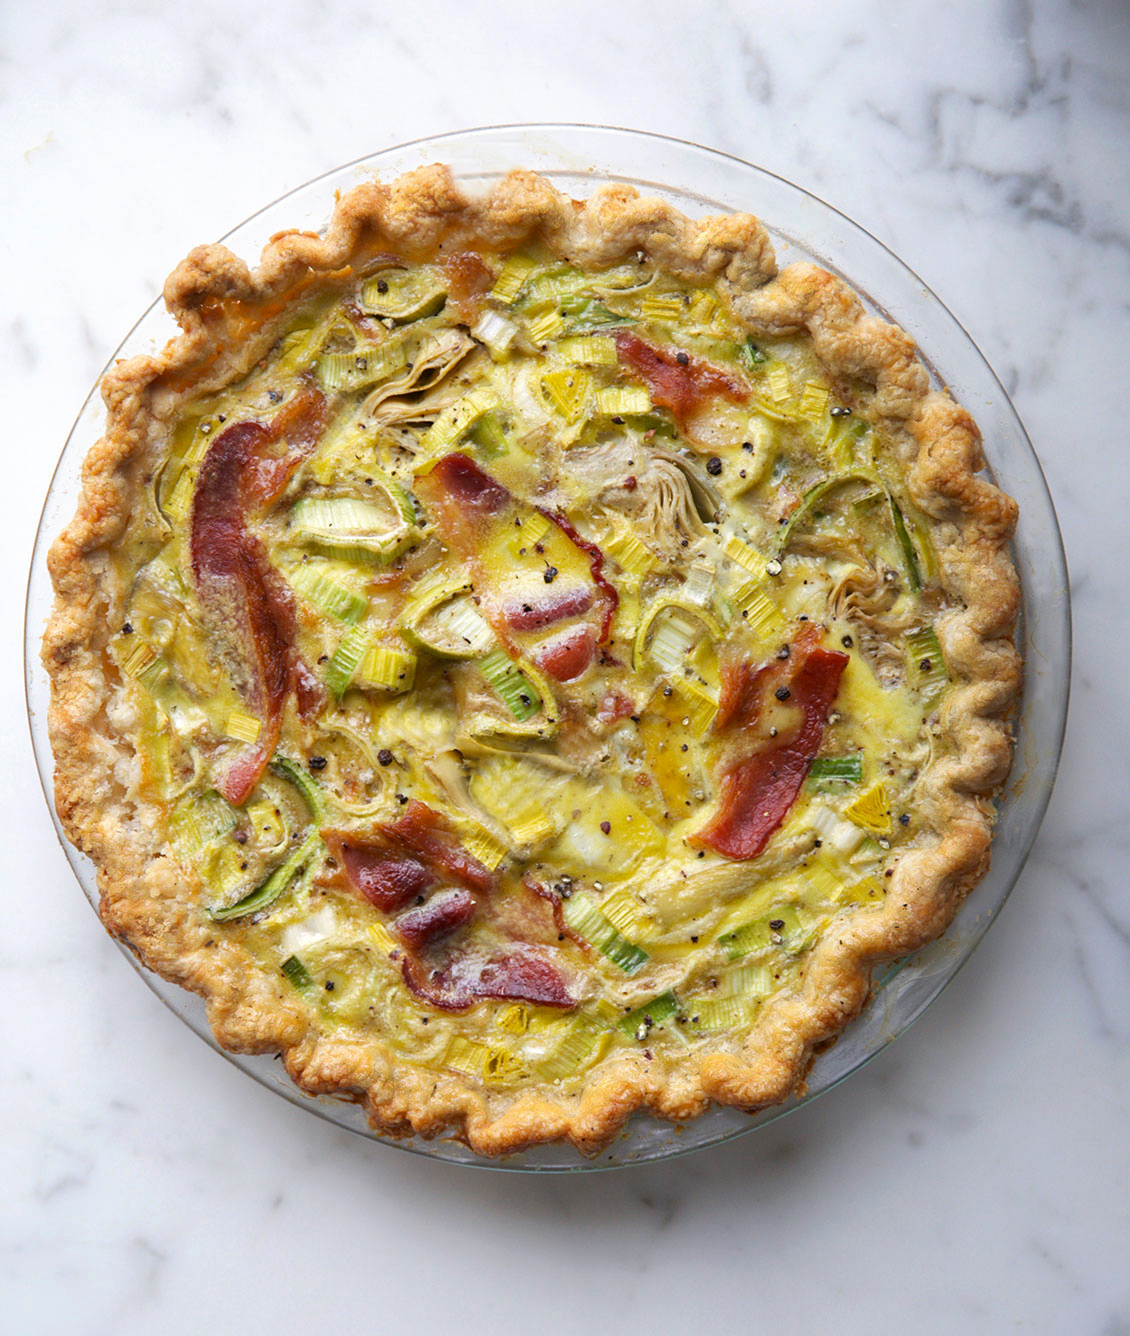 Artichoke, Leek, and Bacon Quiche